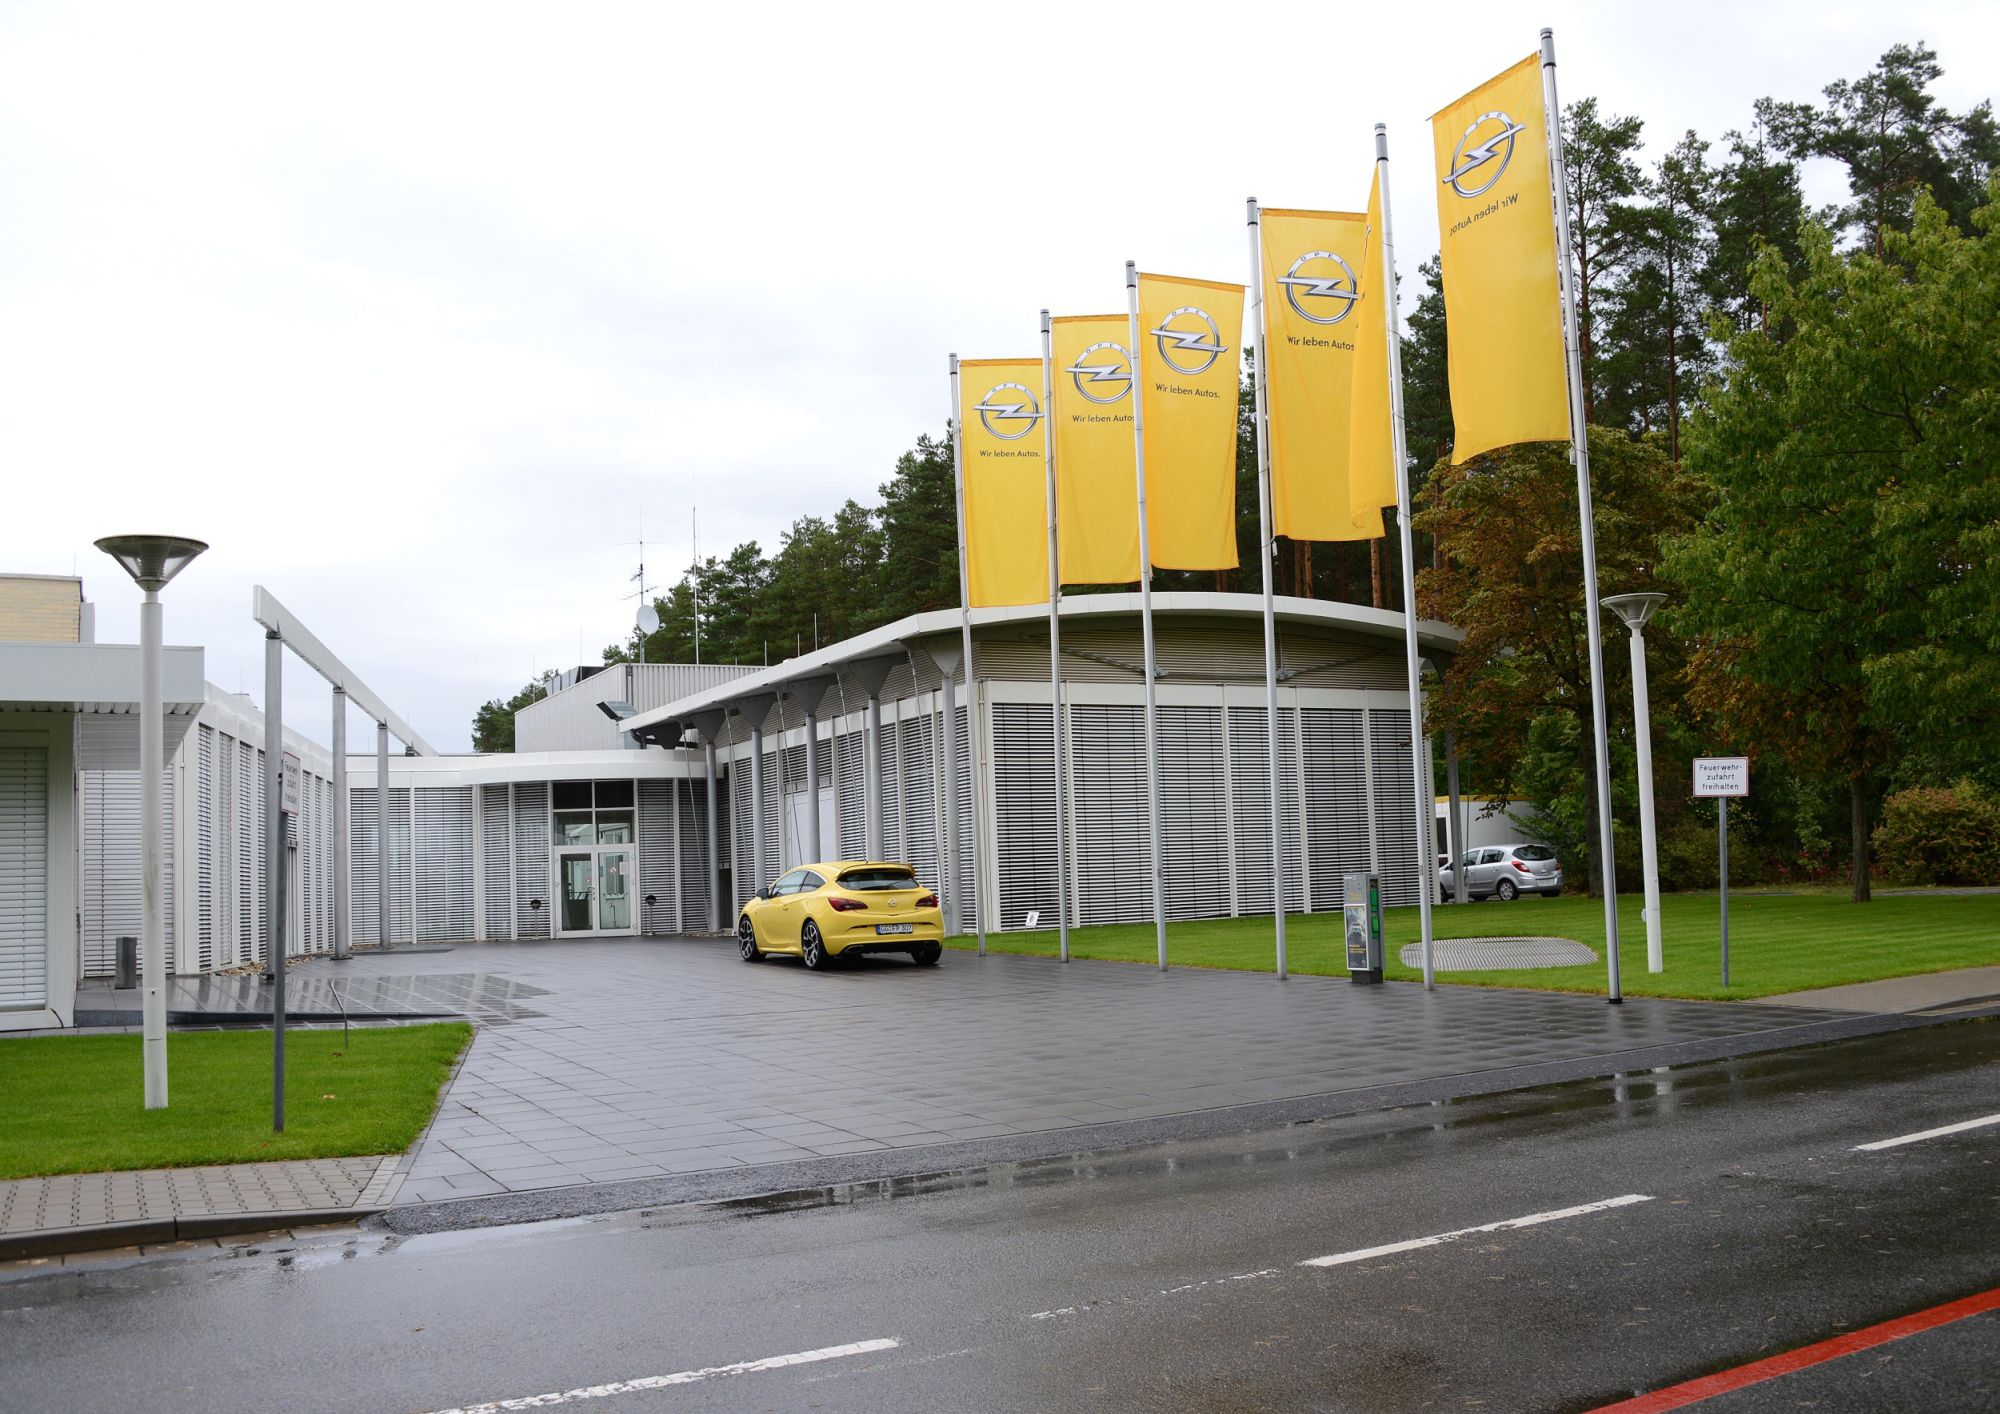 Visit and driving-session at the Opel Testcenter Dudenhofen